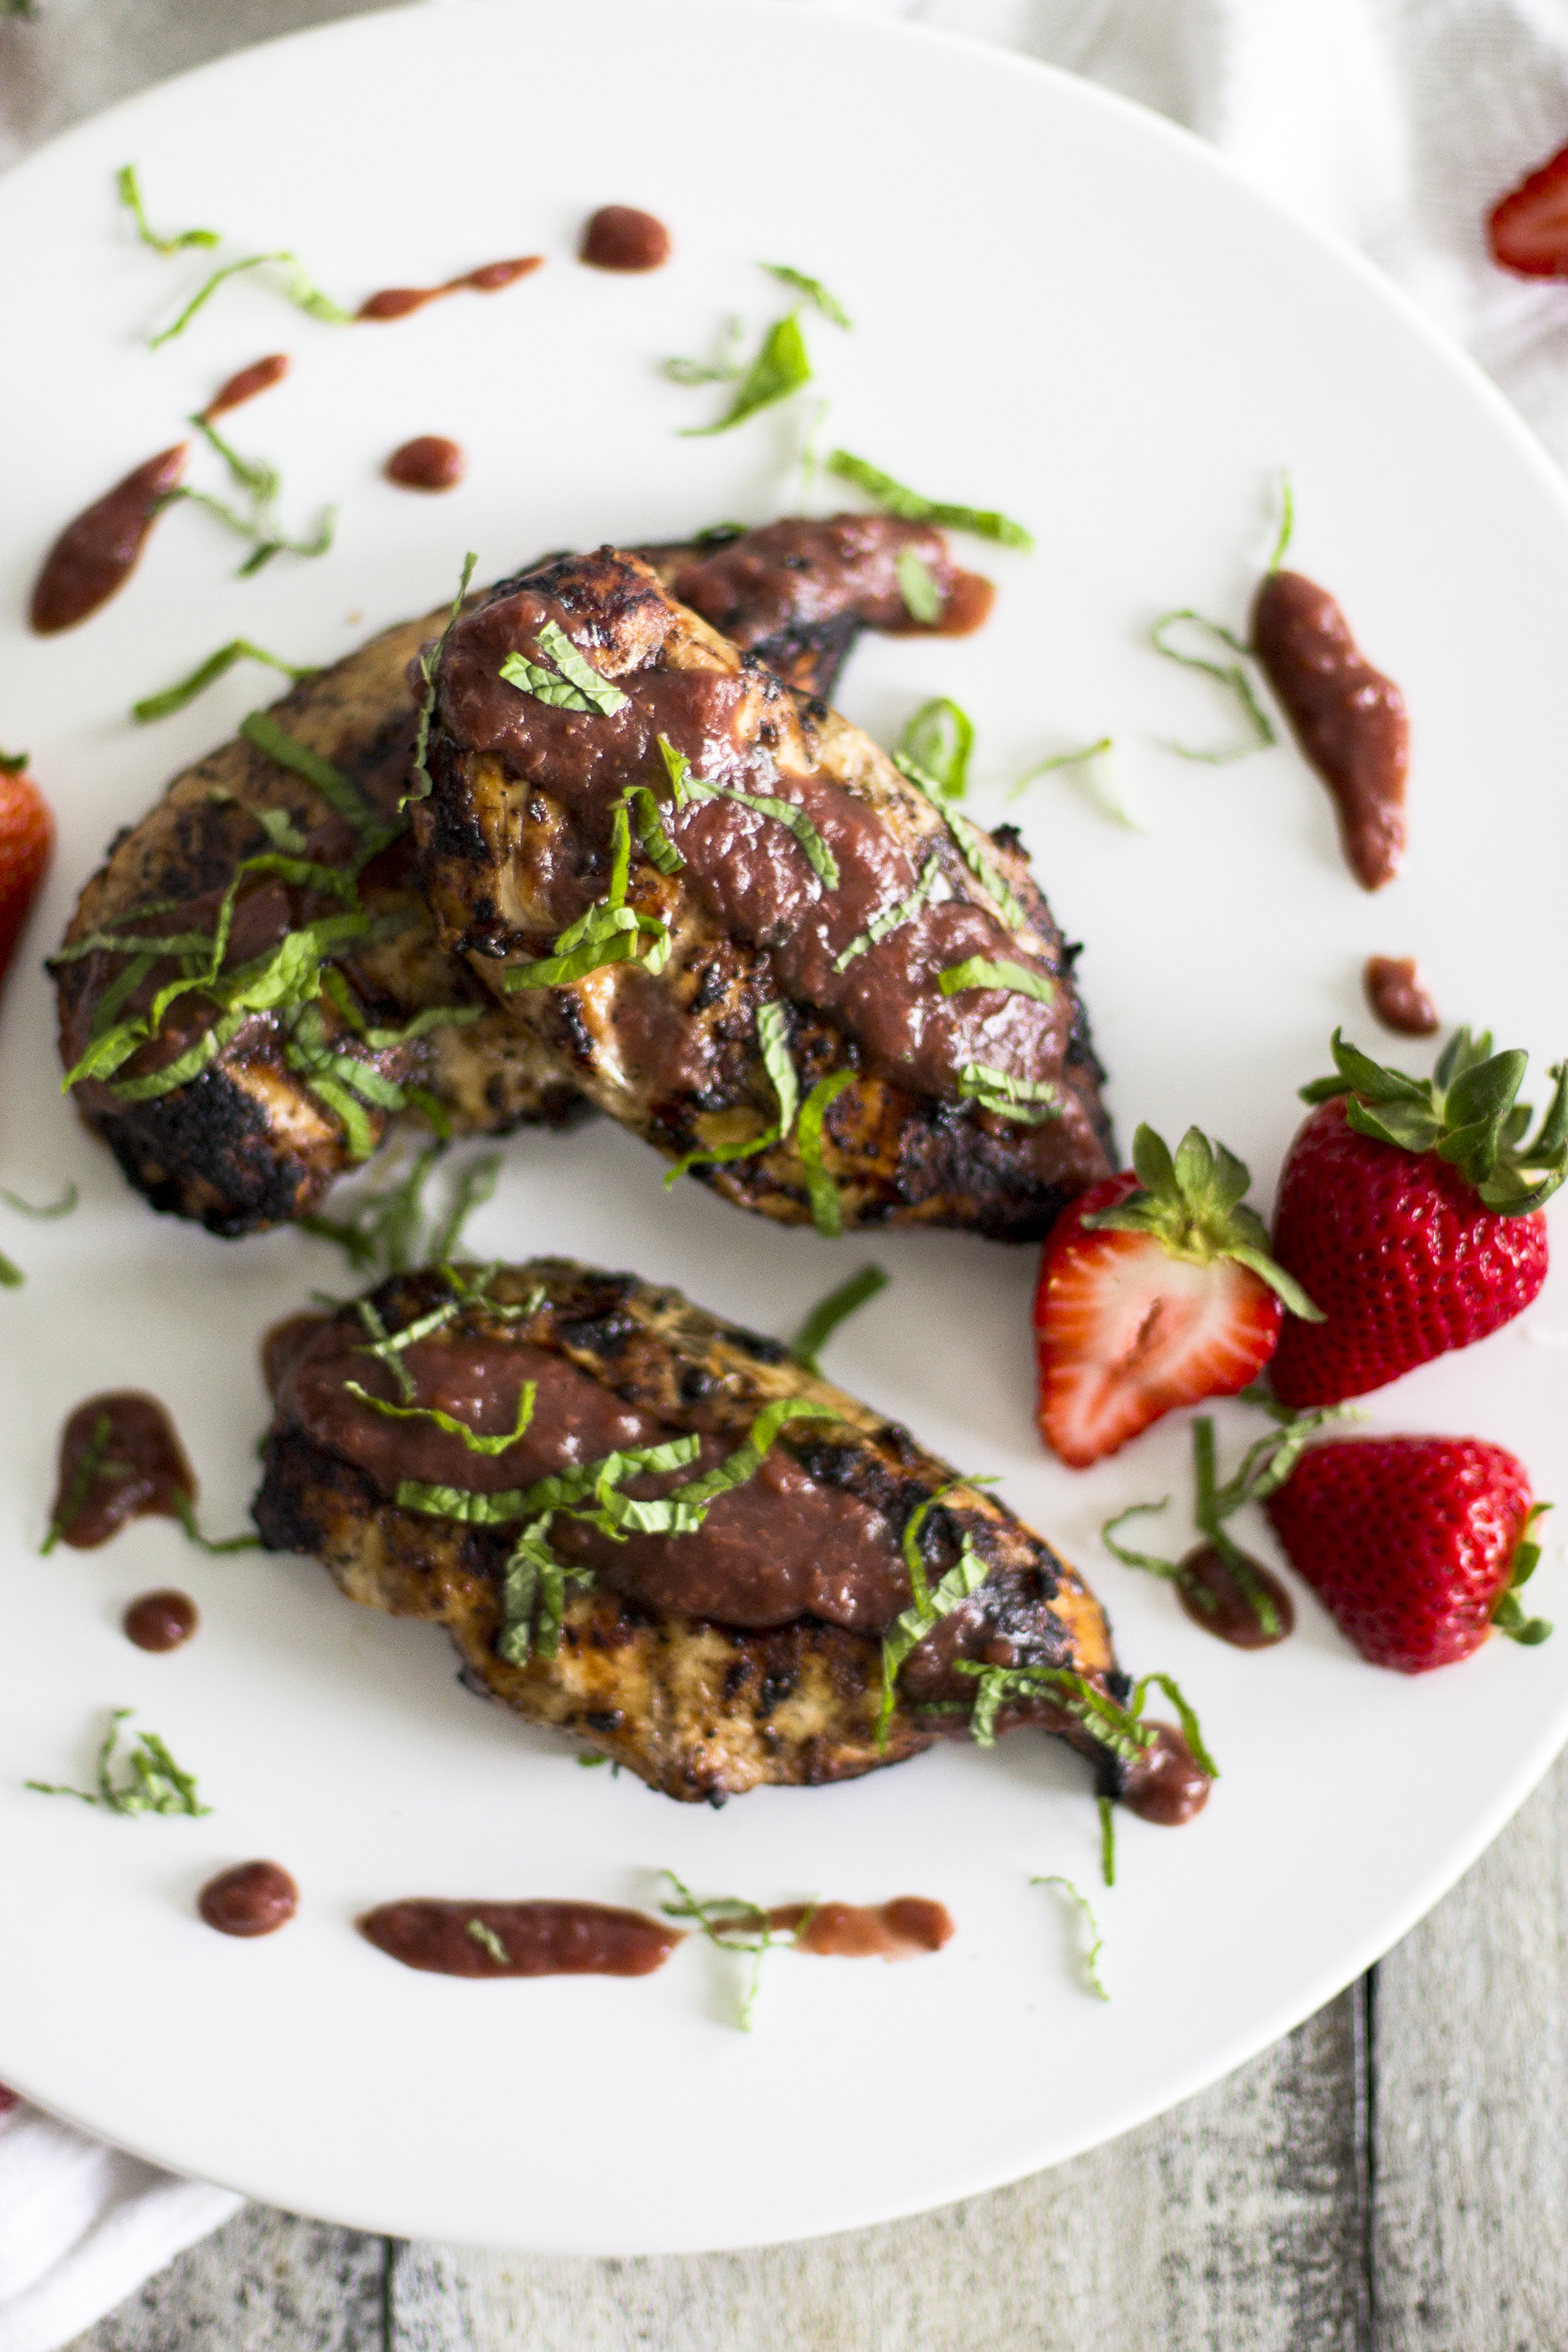 Strawberry Balsamic Grilled Chicken: My Diary of U